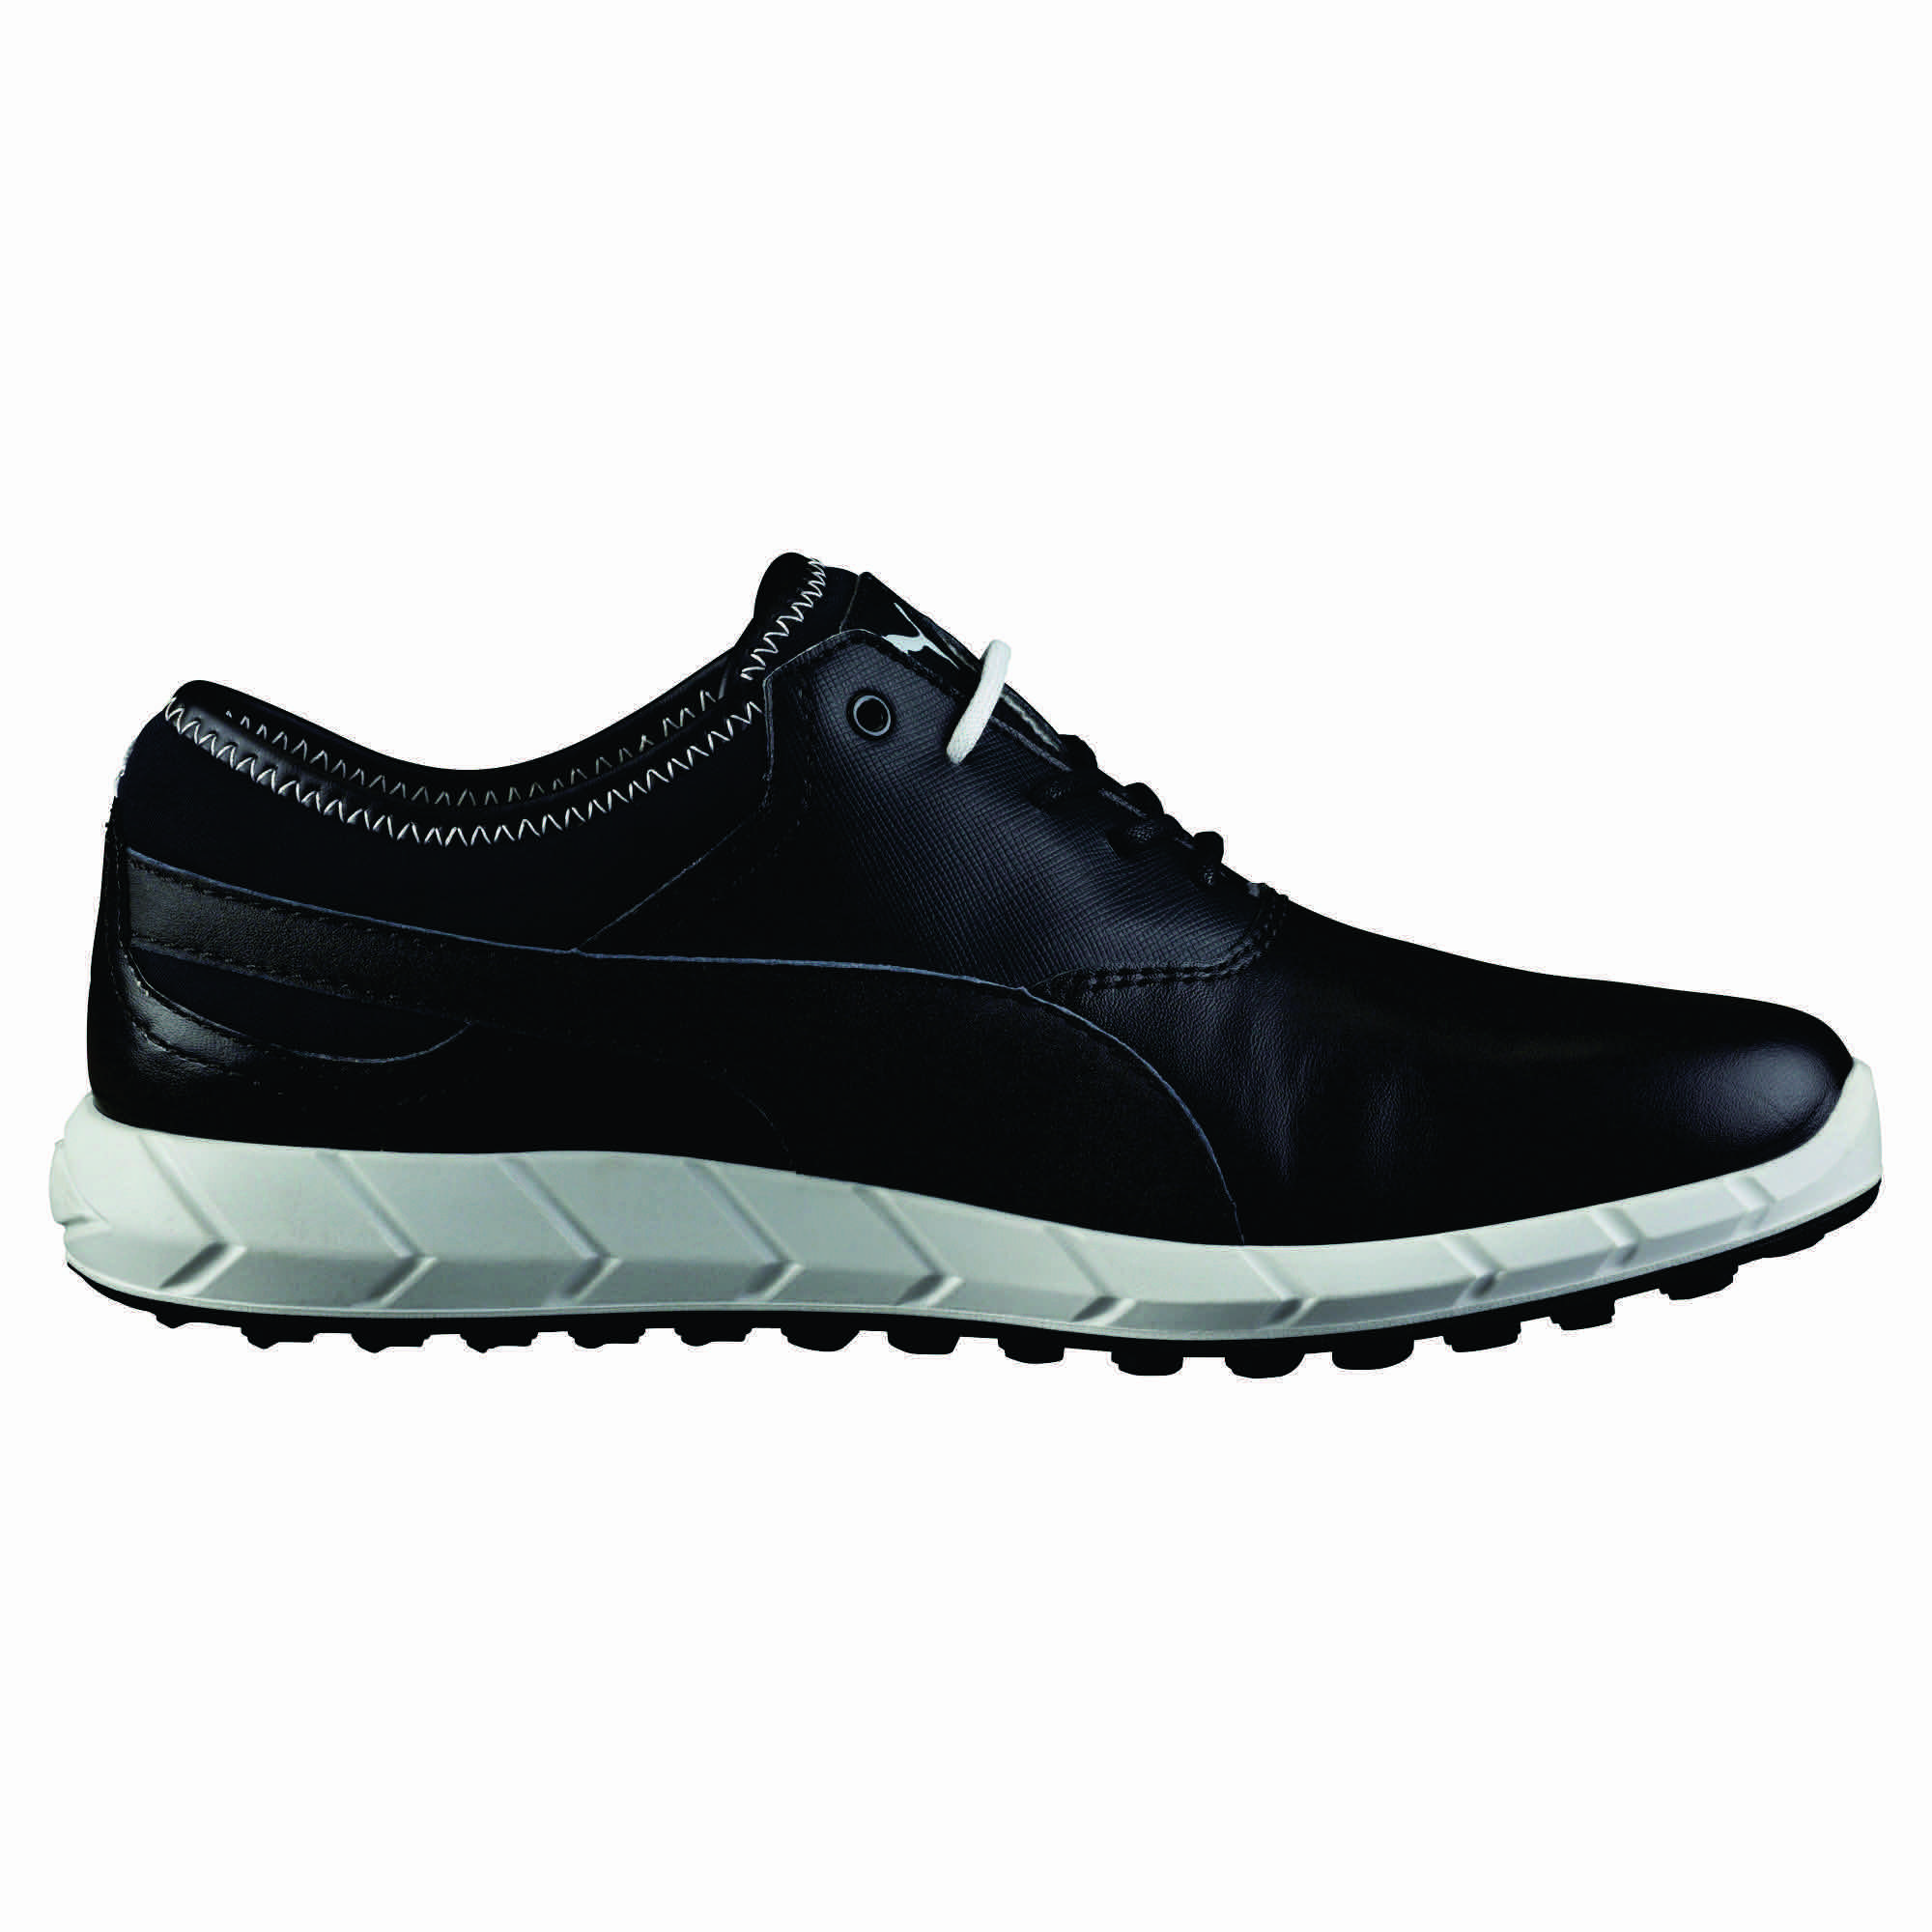 The Brand New Puma Ignite Spikeless Golf shoes